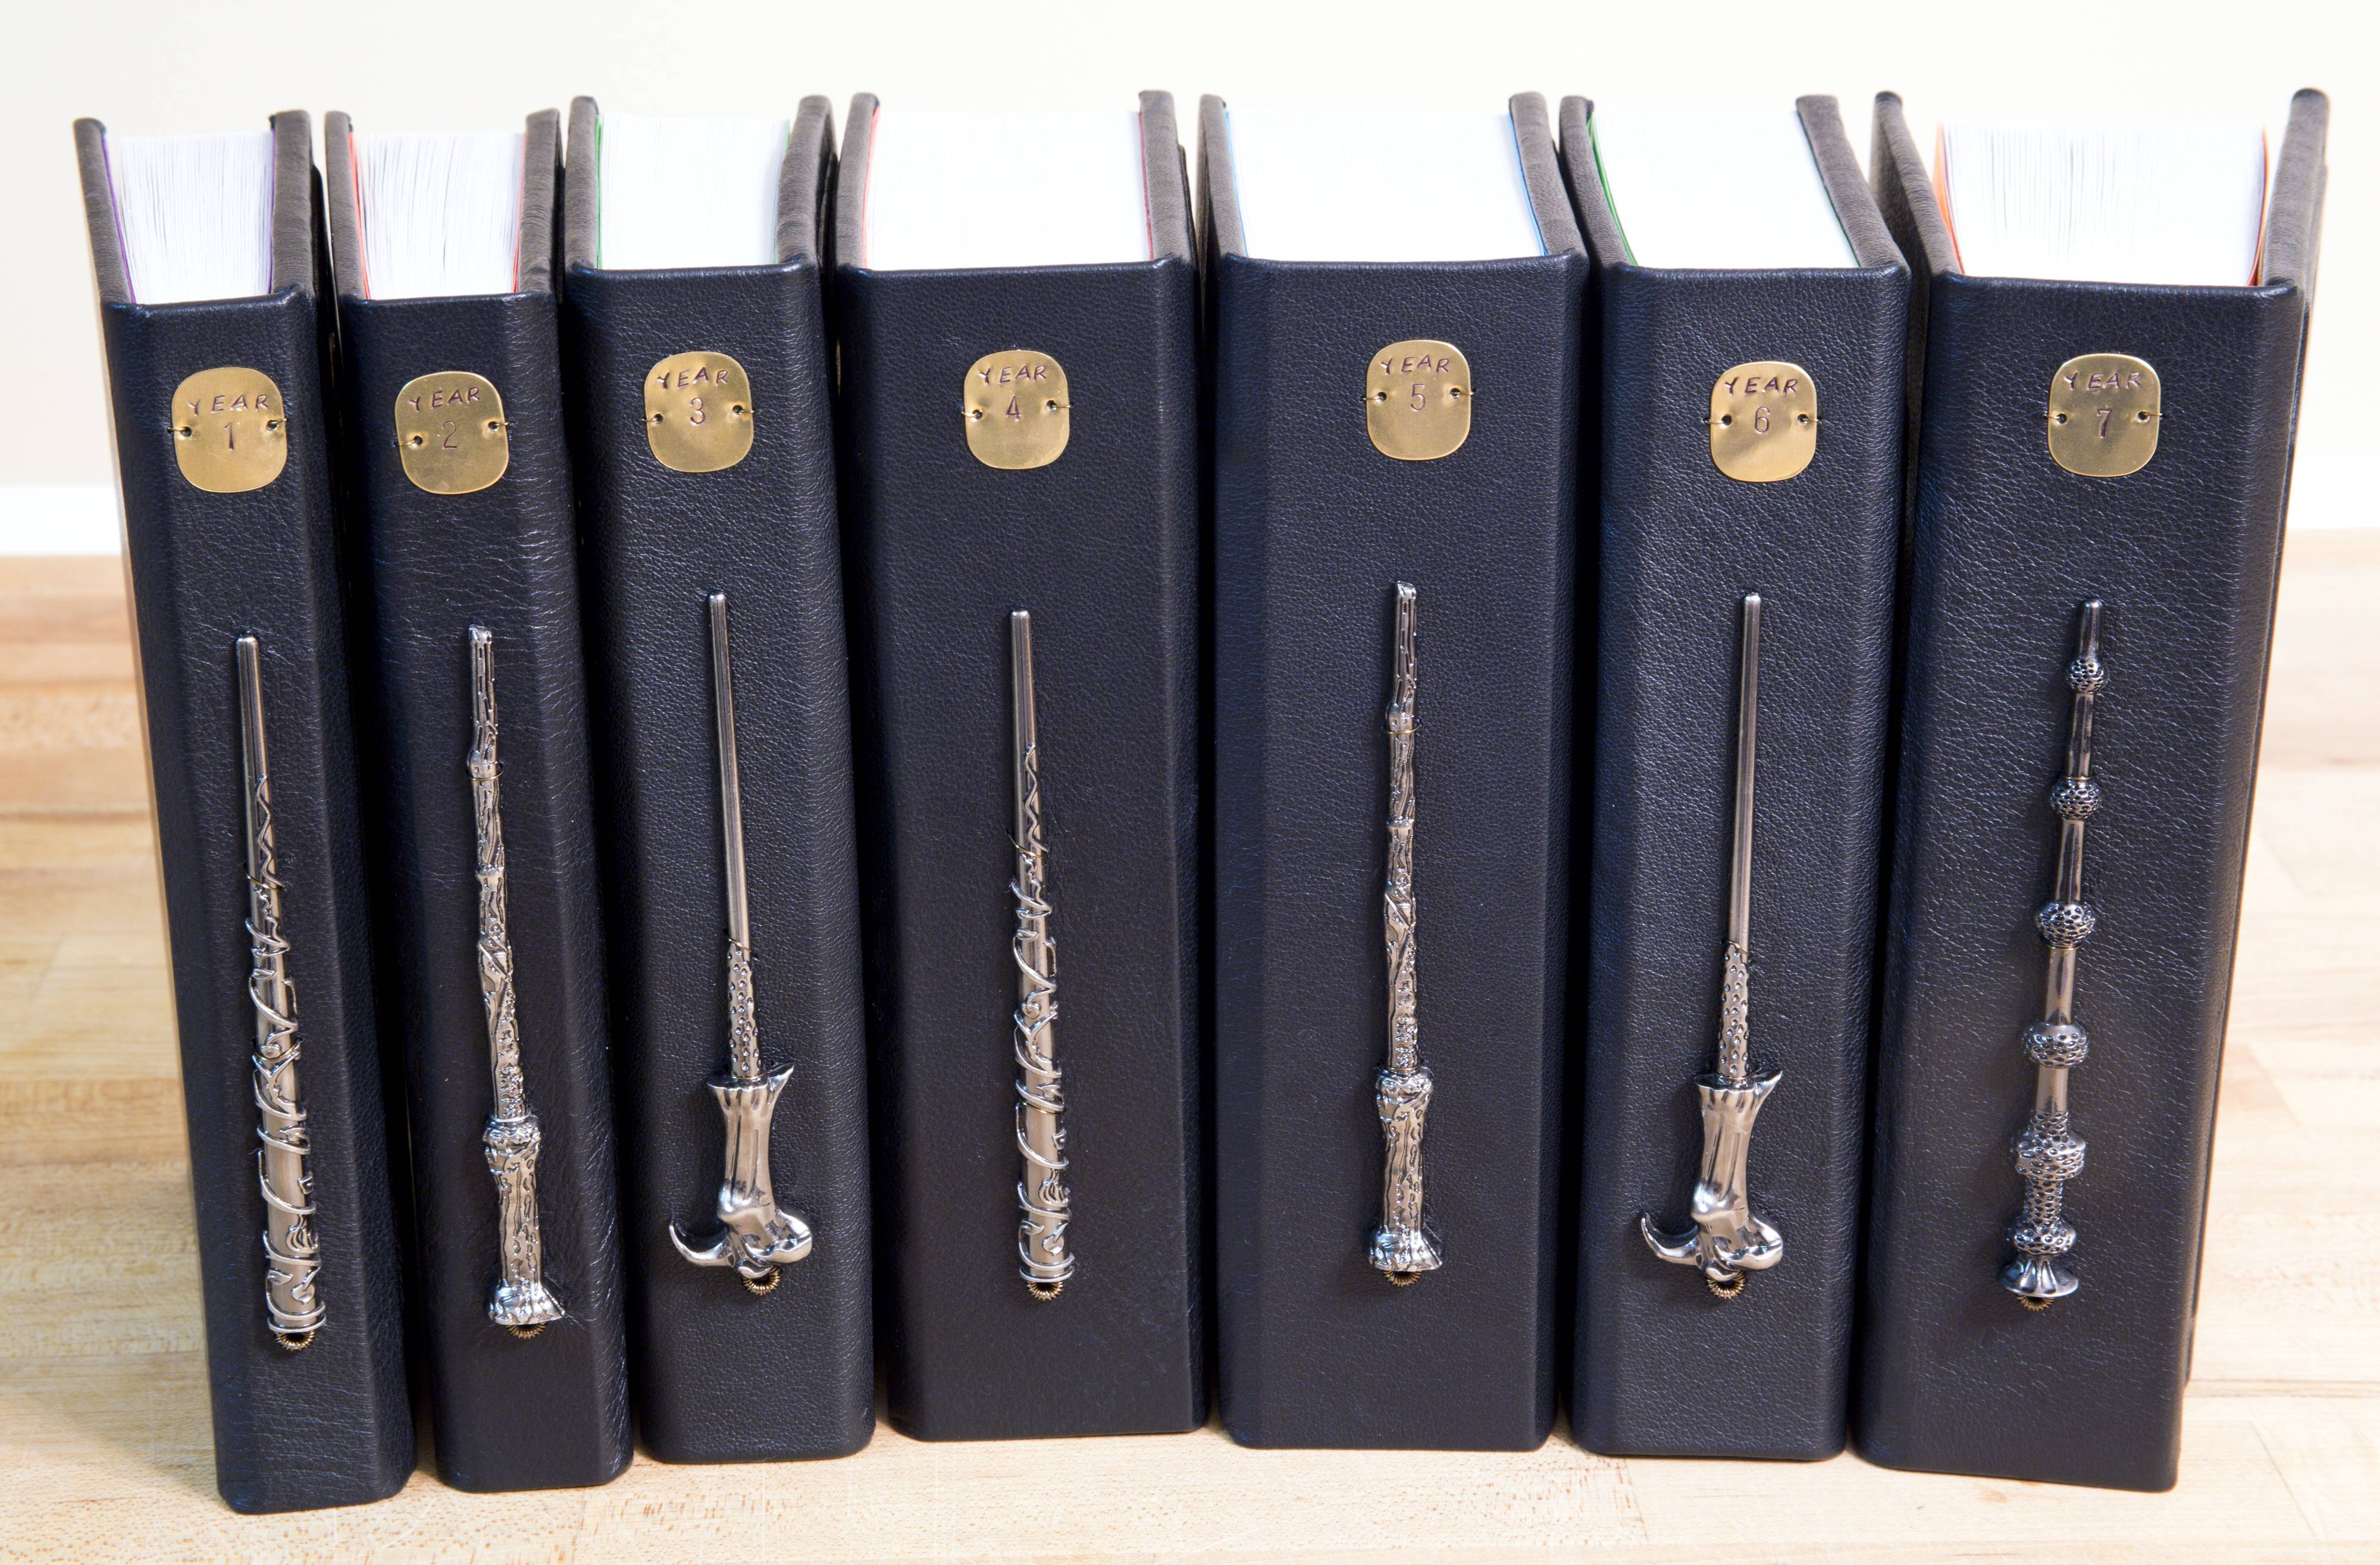 Harry Potter Book Set Original Covers : Awesome harry potter book set with horcrux bookmarks